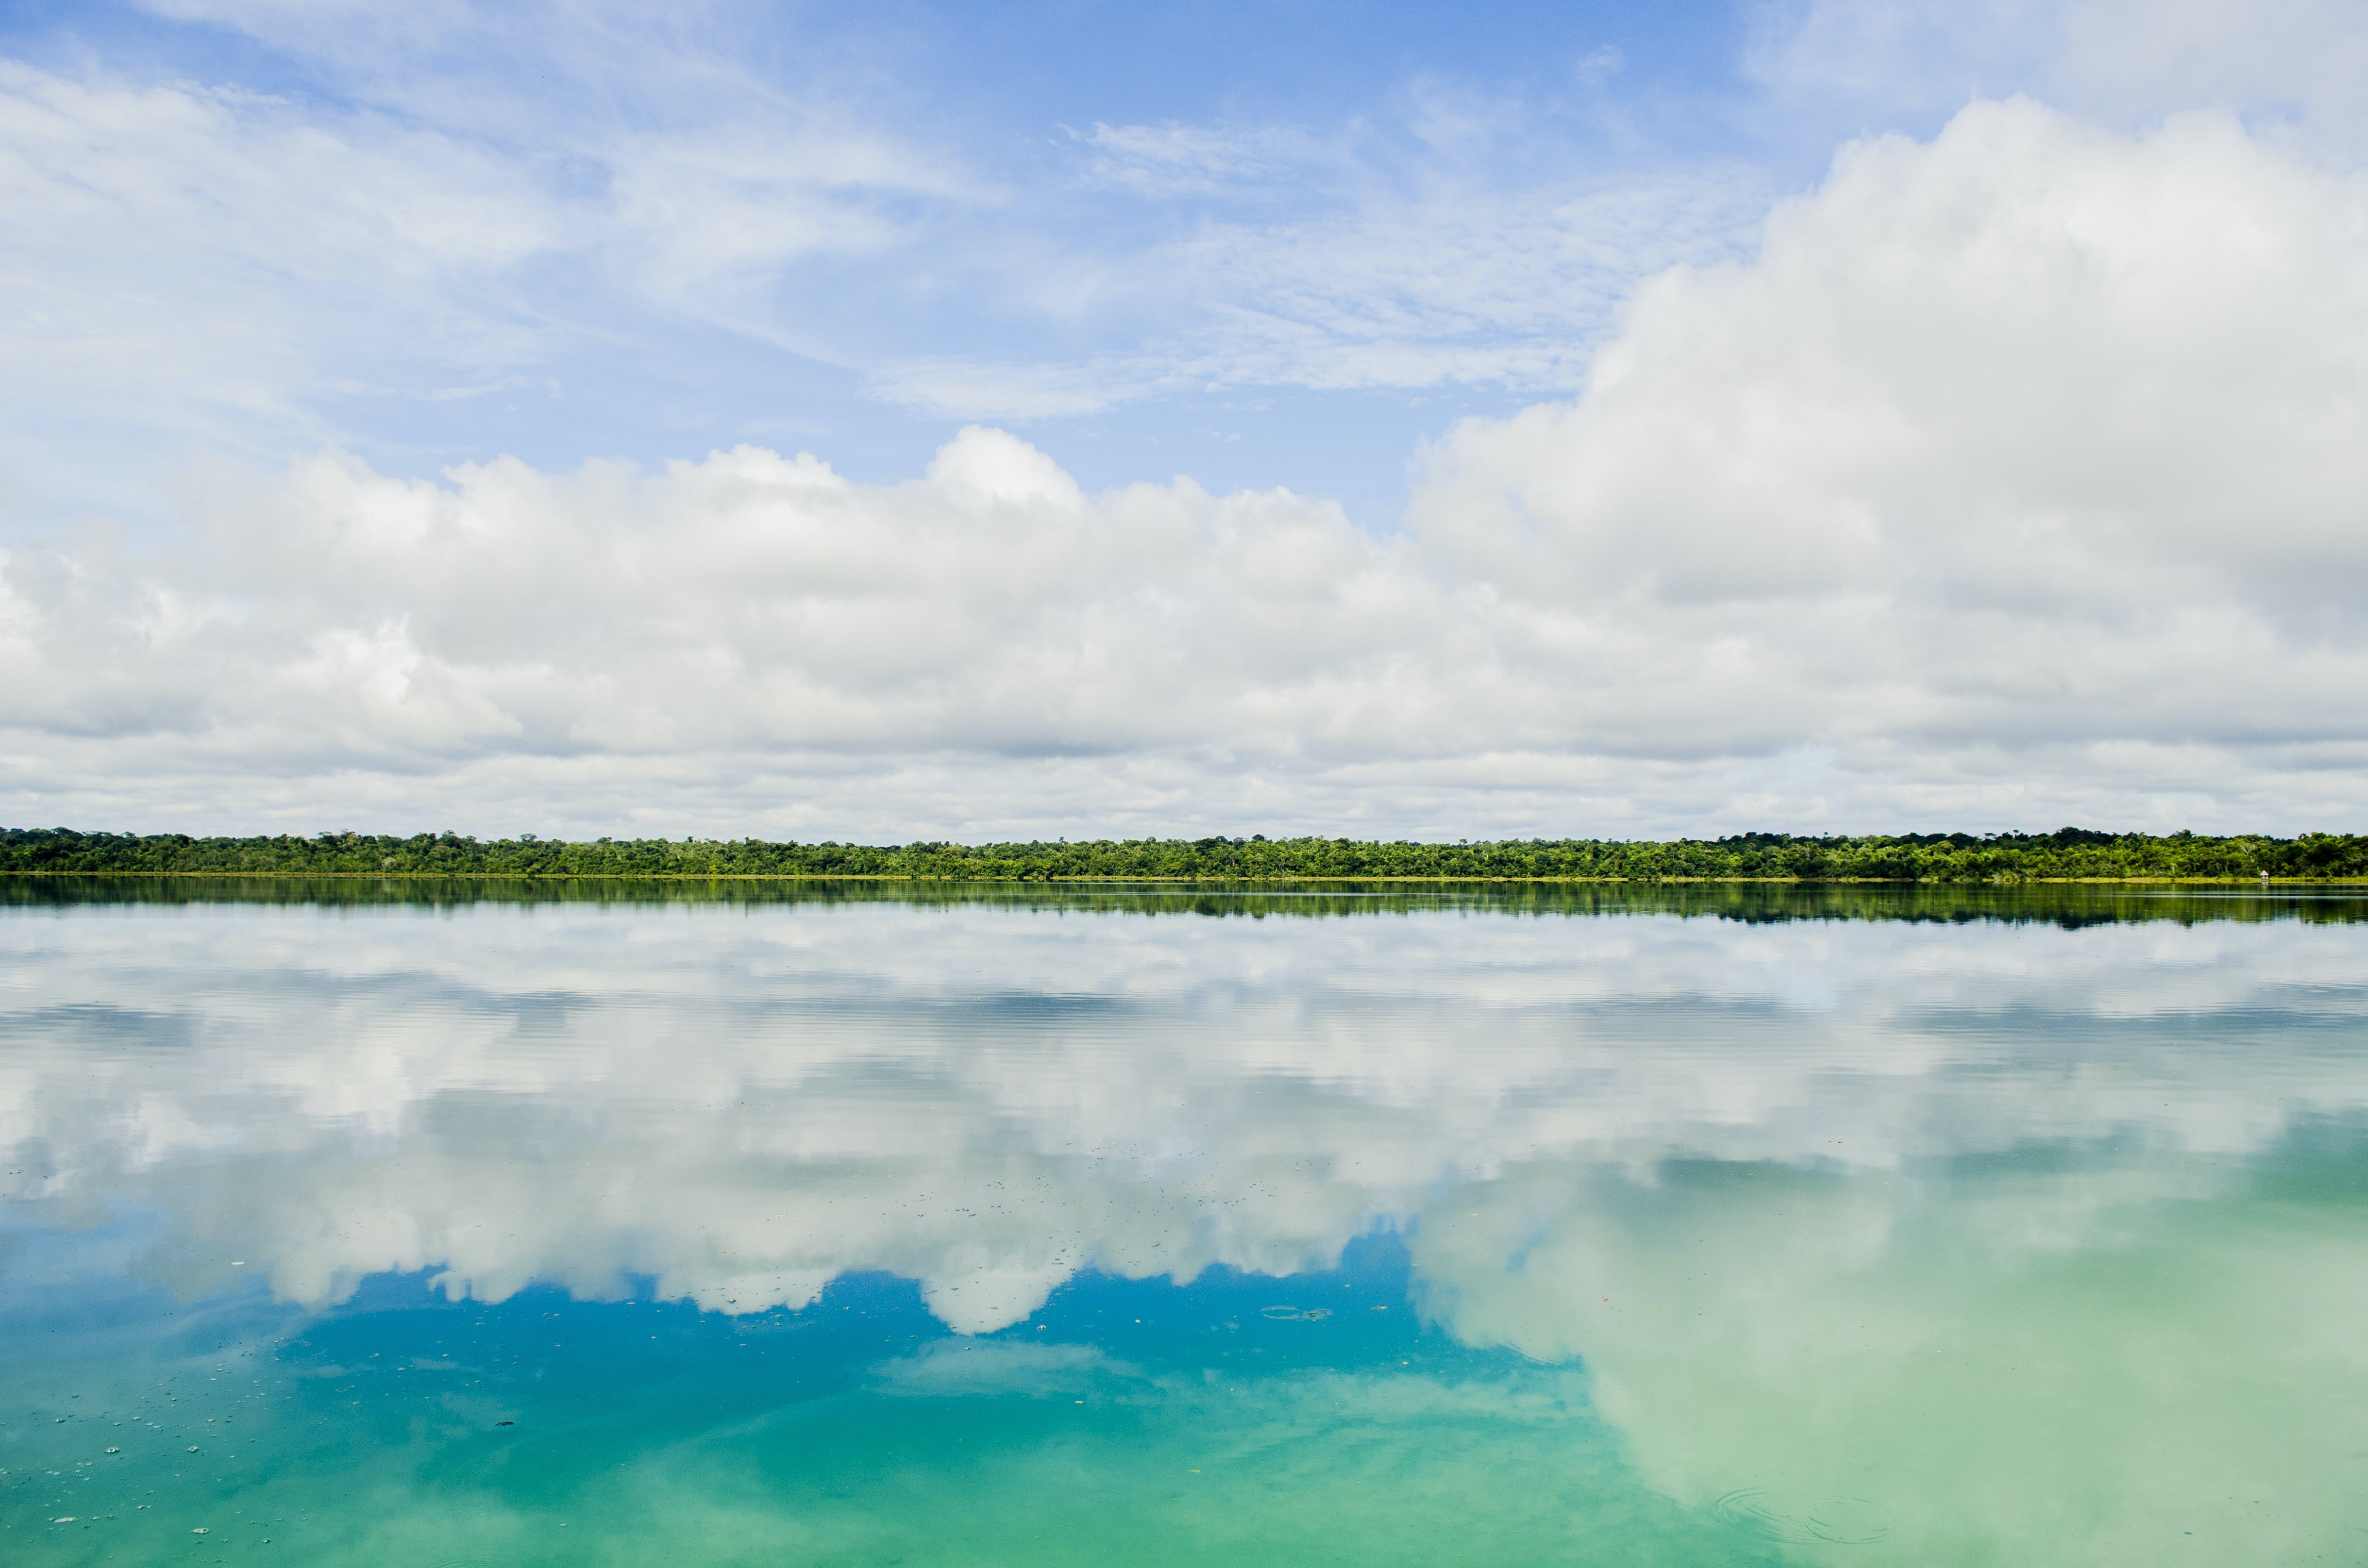 reflection of clouds in body of water